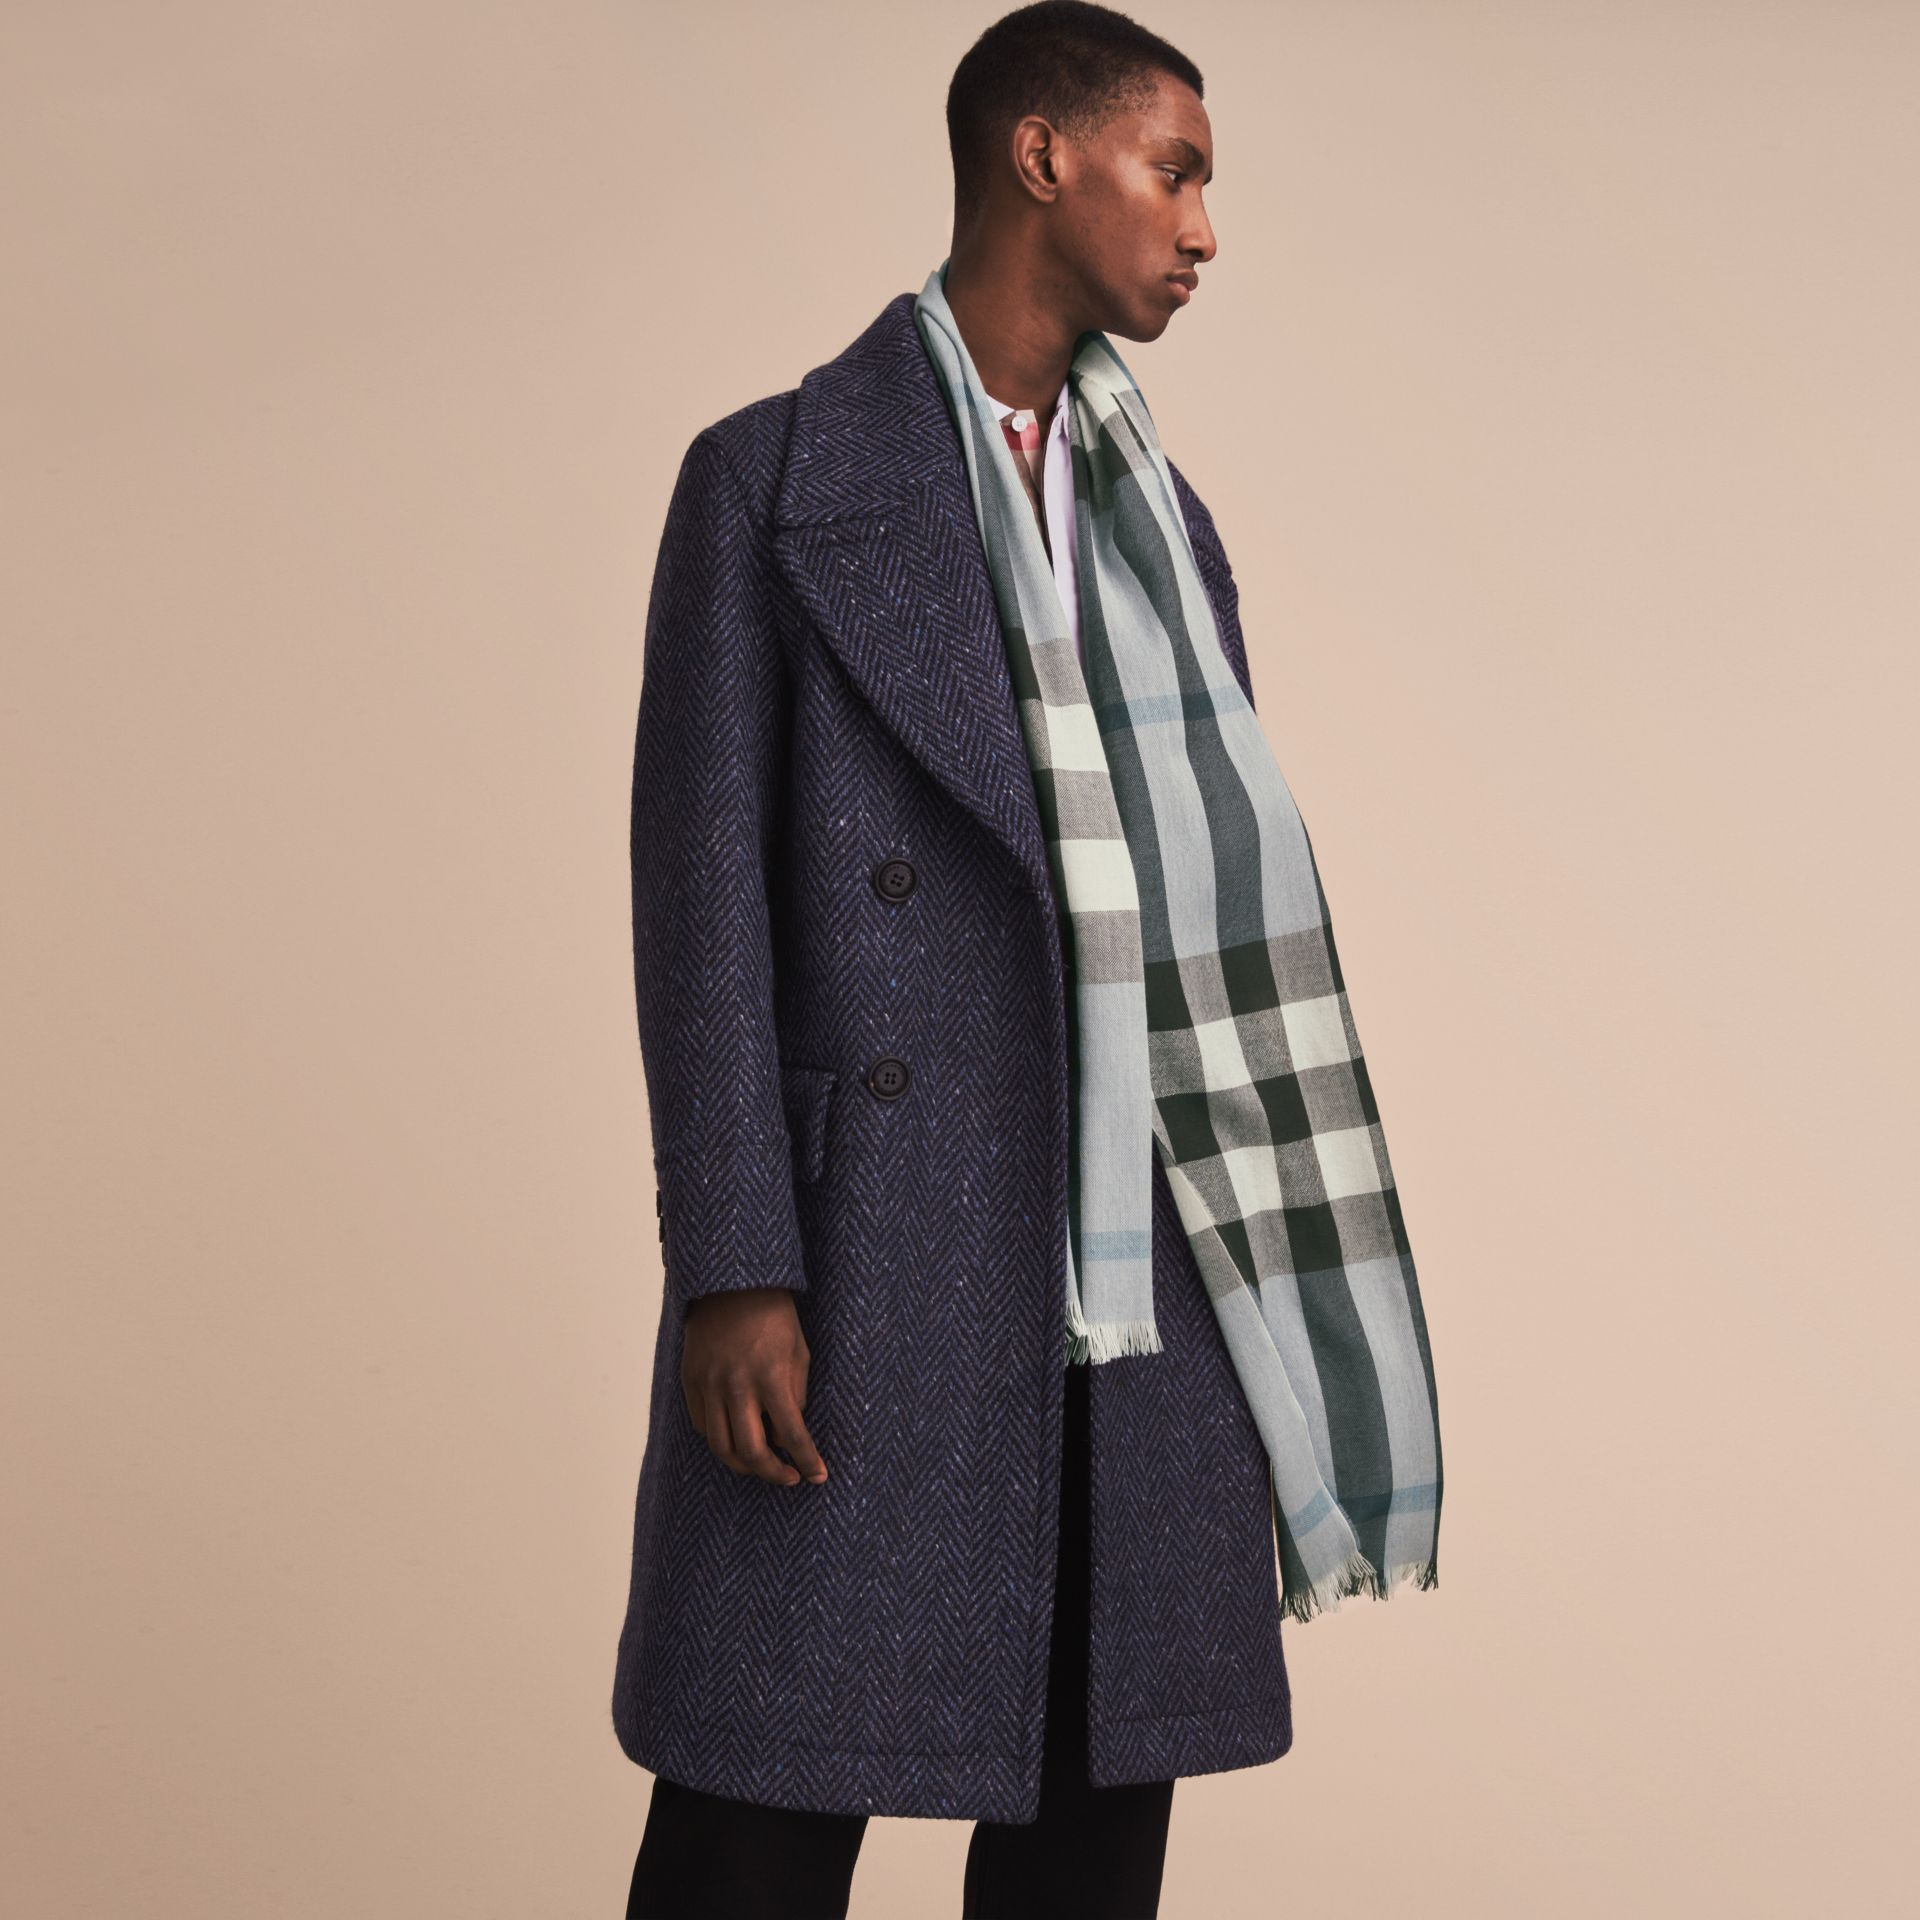 Lightweight Check Wool Cashmere Scarf in Mist Grey | Burberry - gallery image 3